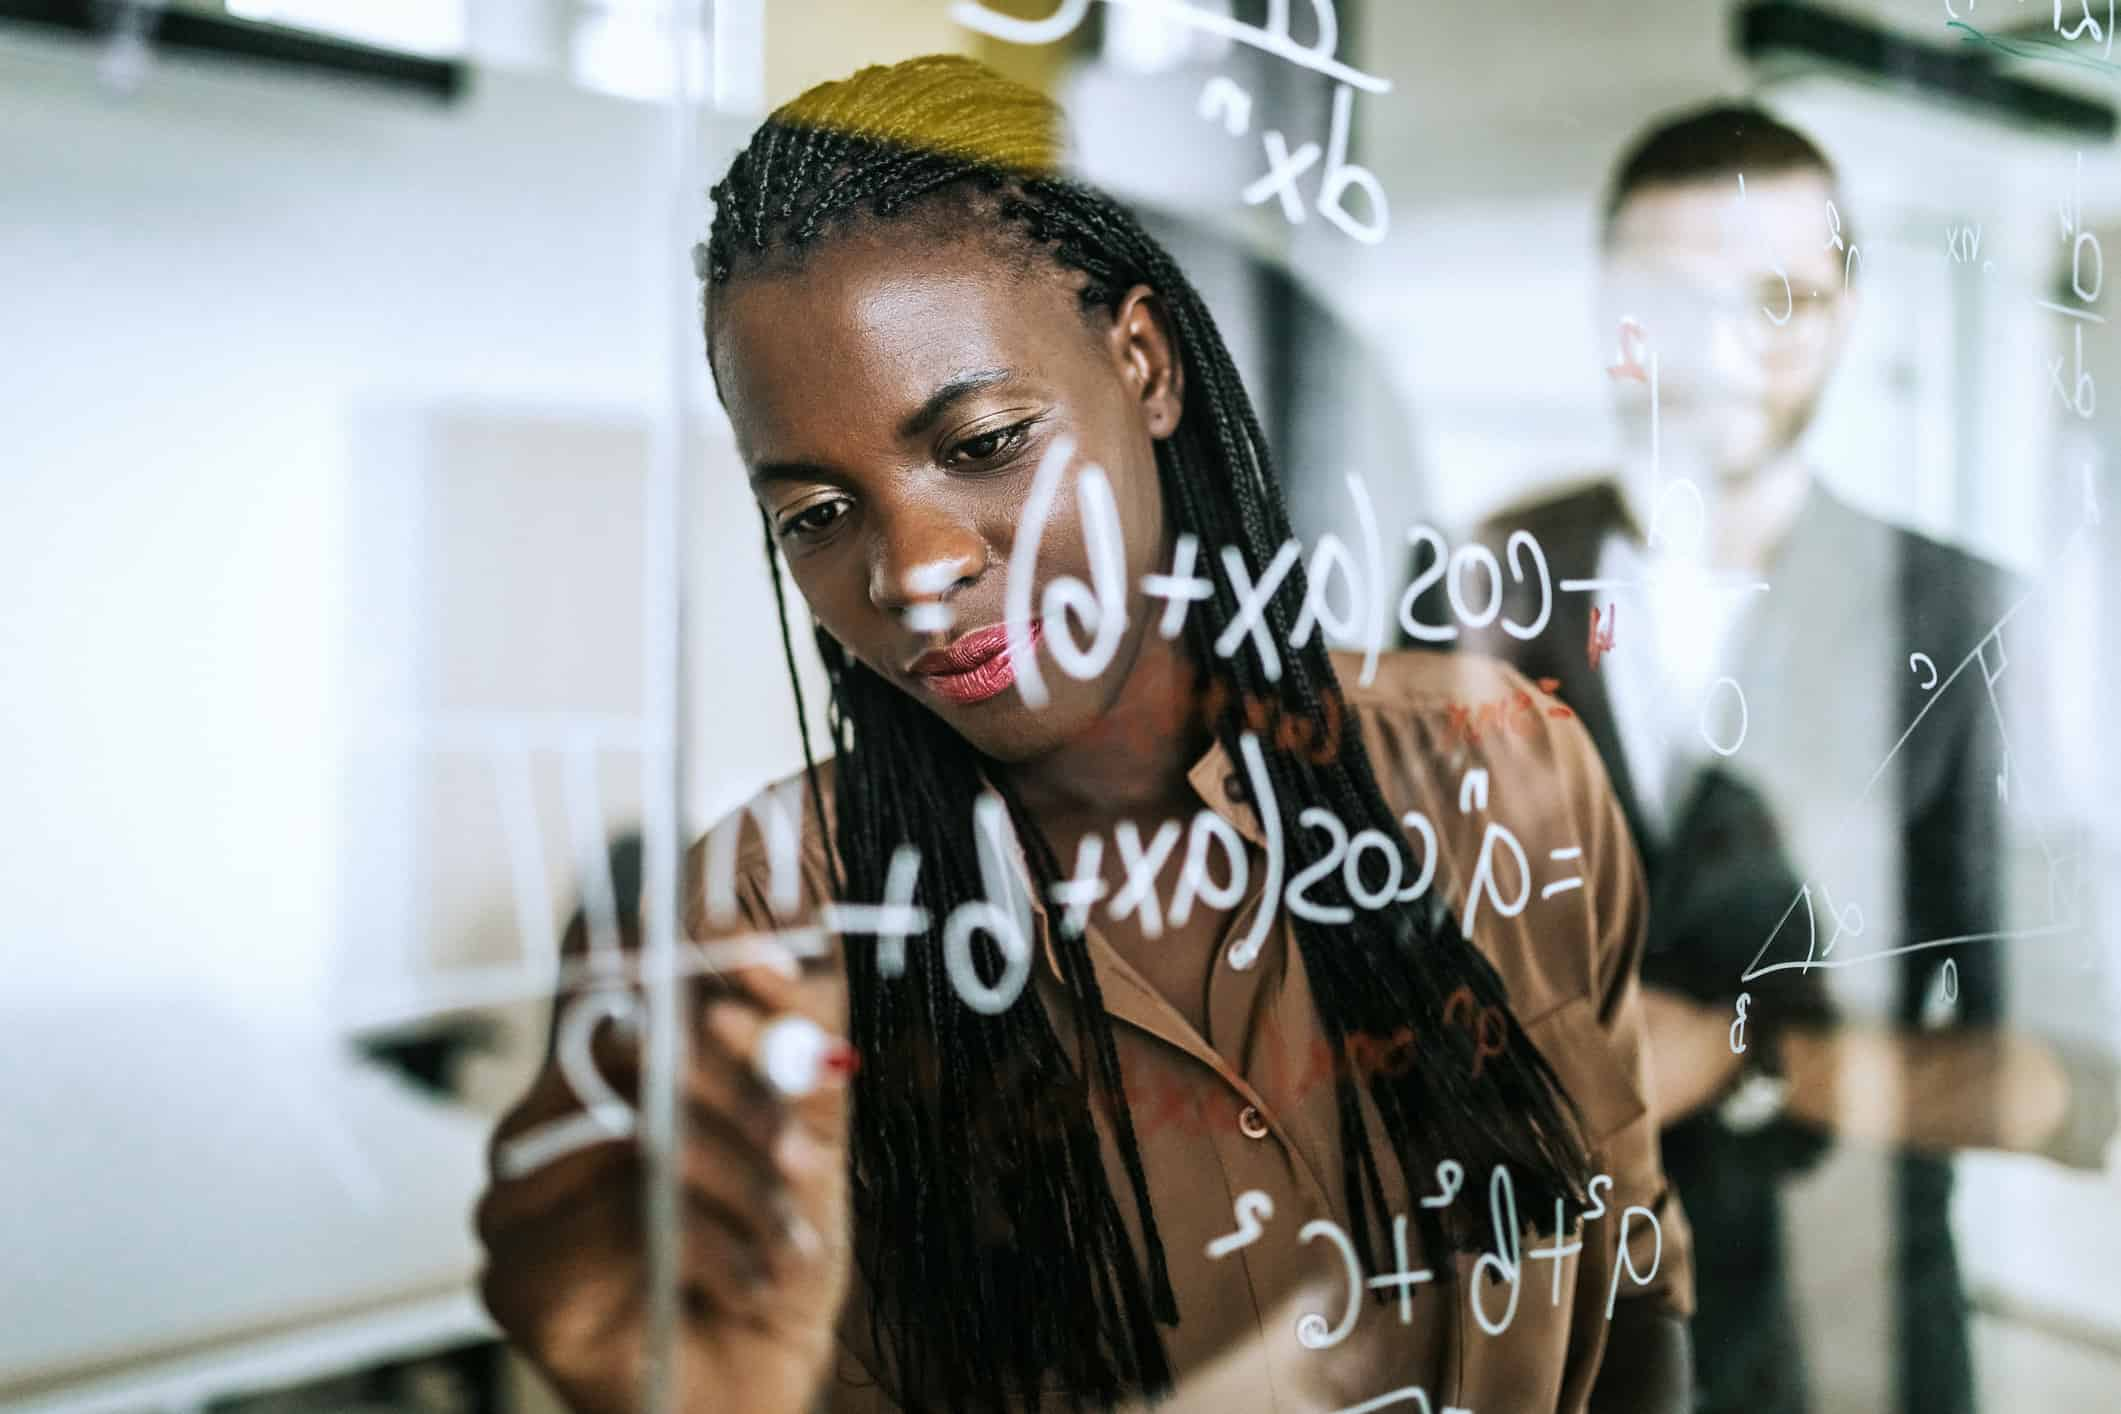 Colleagues Writing Mathematical Formulas On Transparent Wipe Board